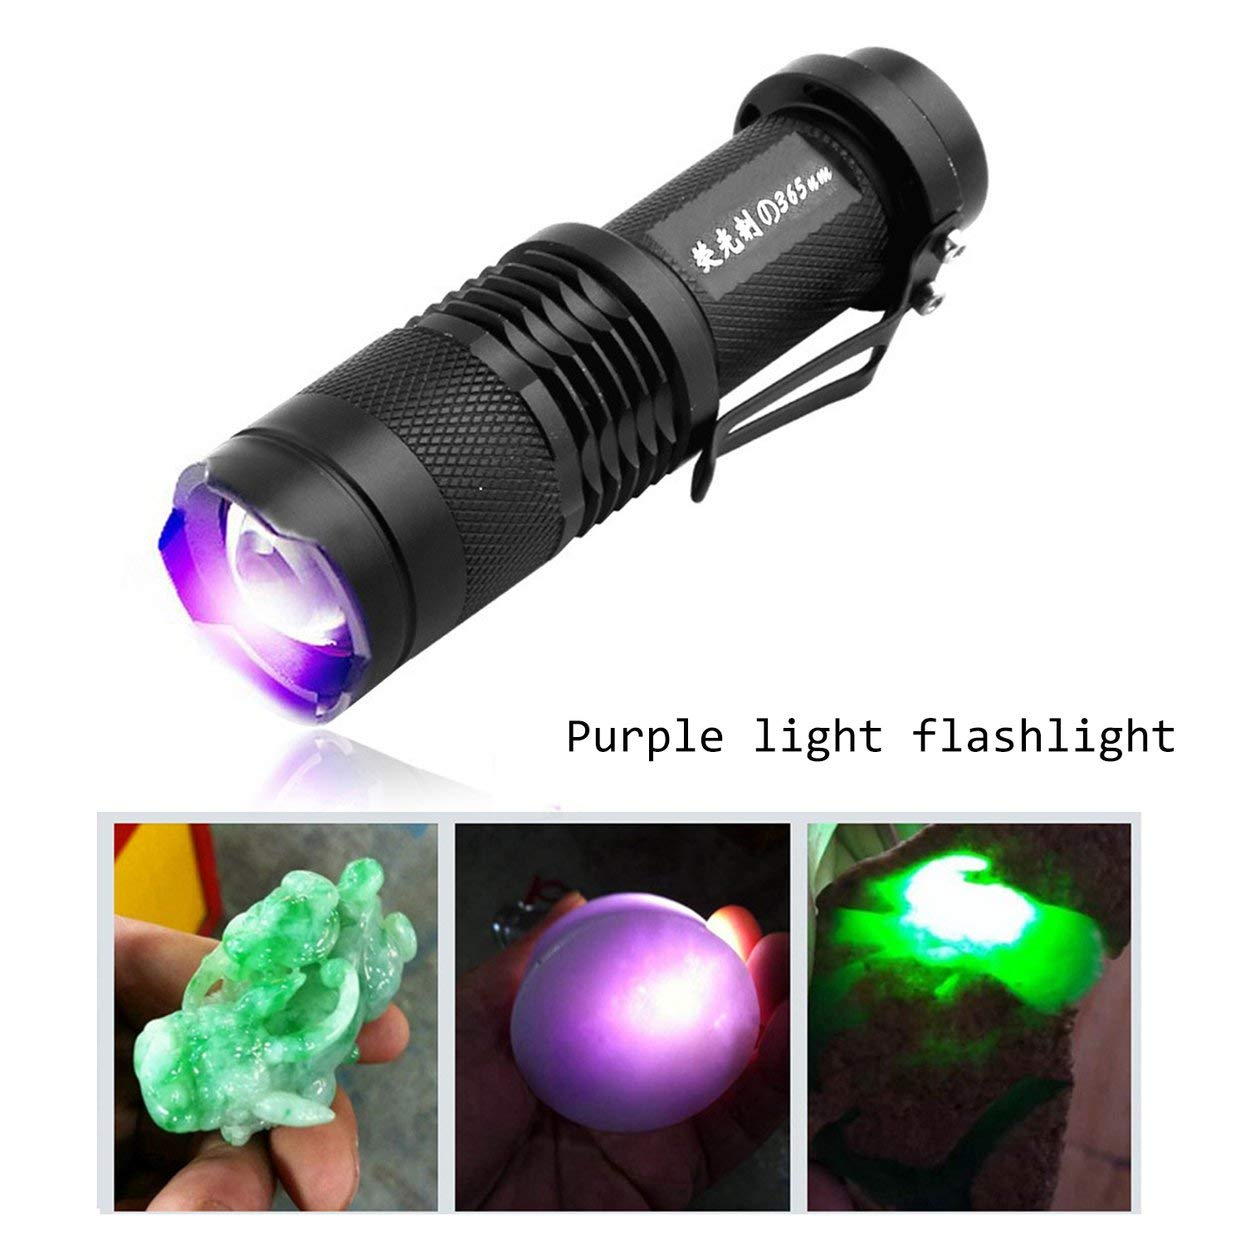 Lamijca UV Detector Ultra Violet LED Flashlight Backlight 395nm Inspection Lamp Torch for Dog Cat Urine Pet Stains Scorpions